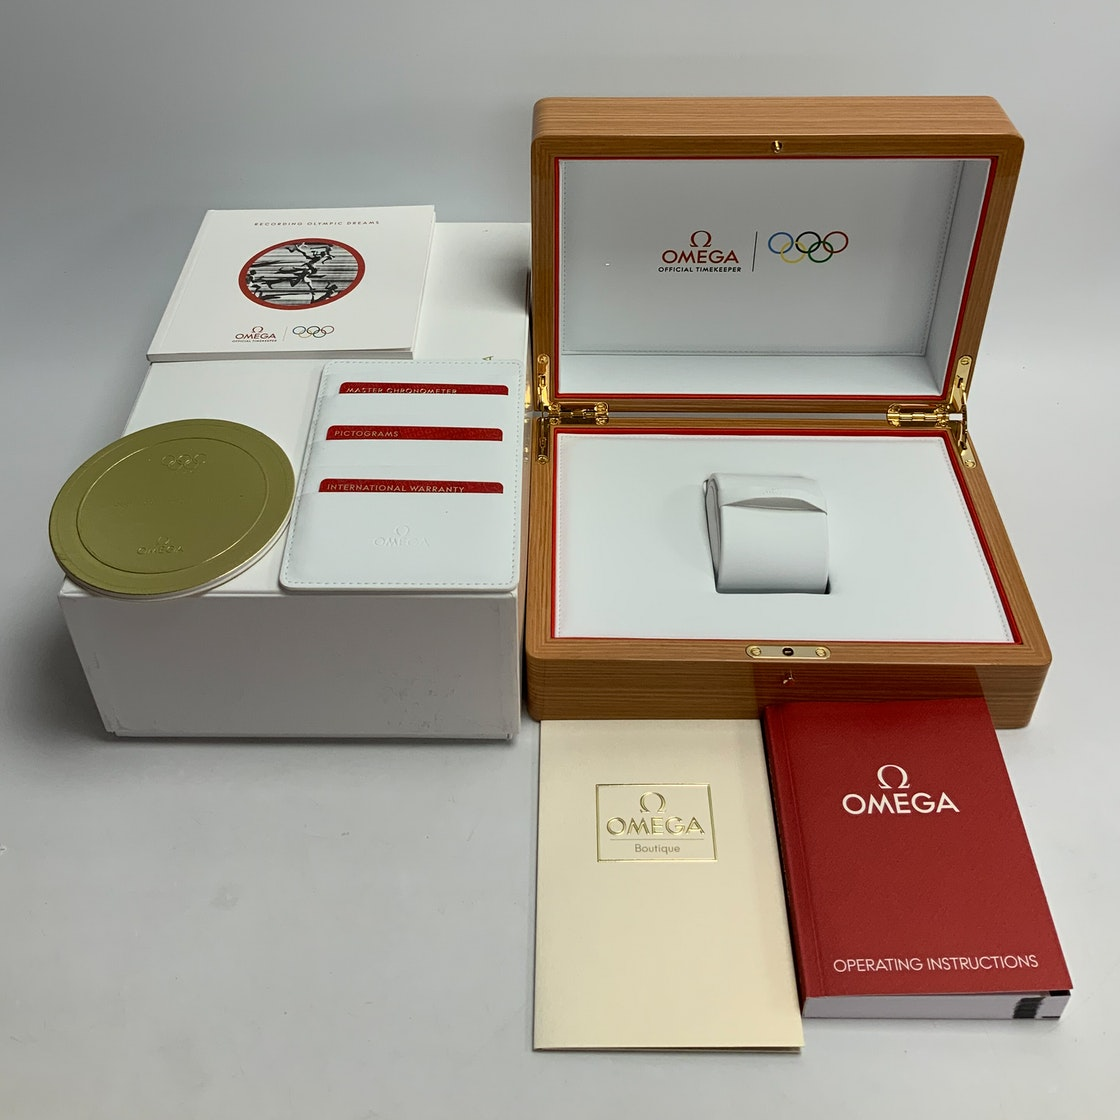 Omega Seamaster Olympic Games Gold Collection Official Timekeeper 522.53.40.20.04.001